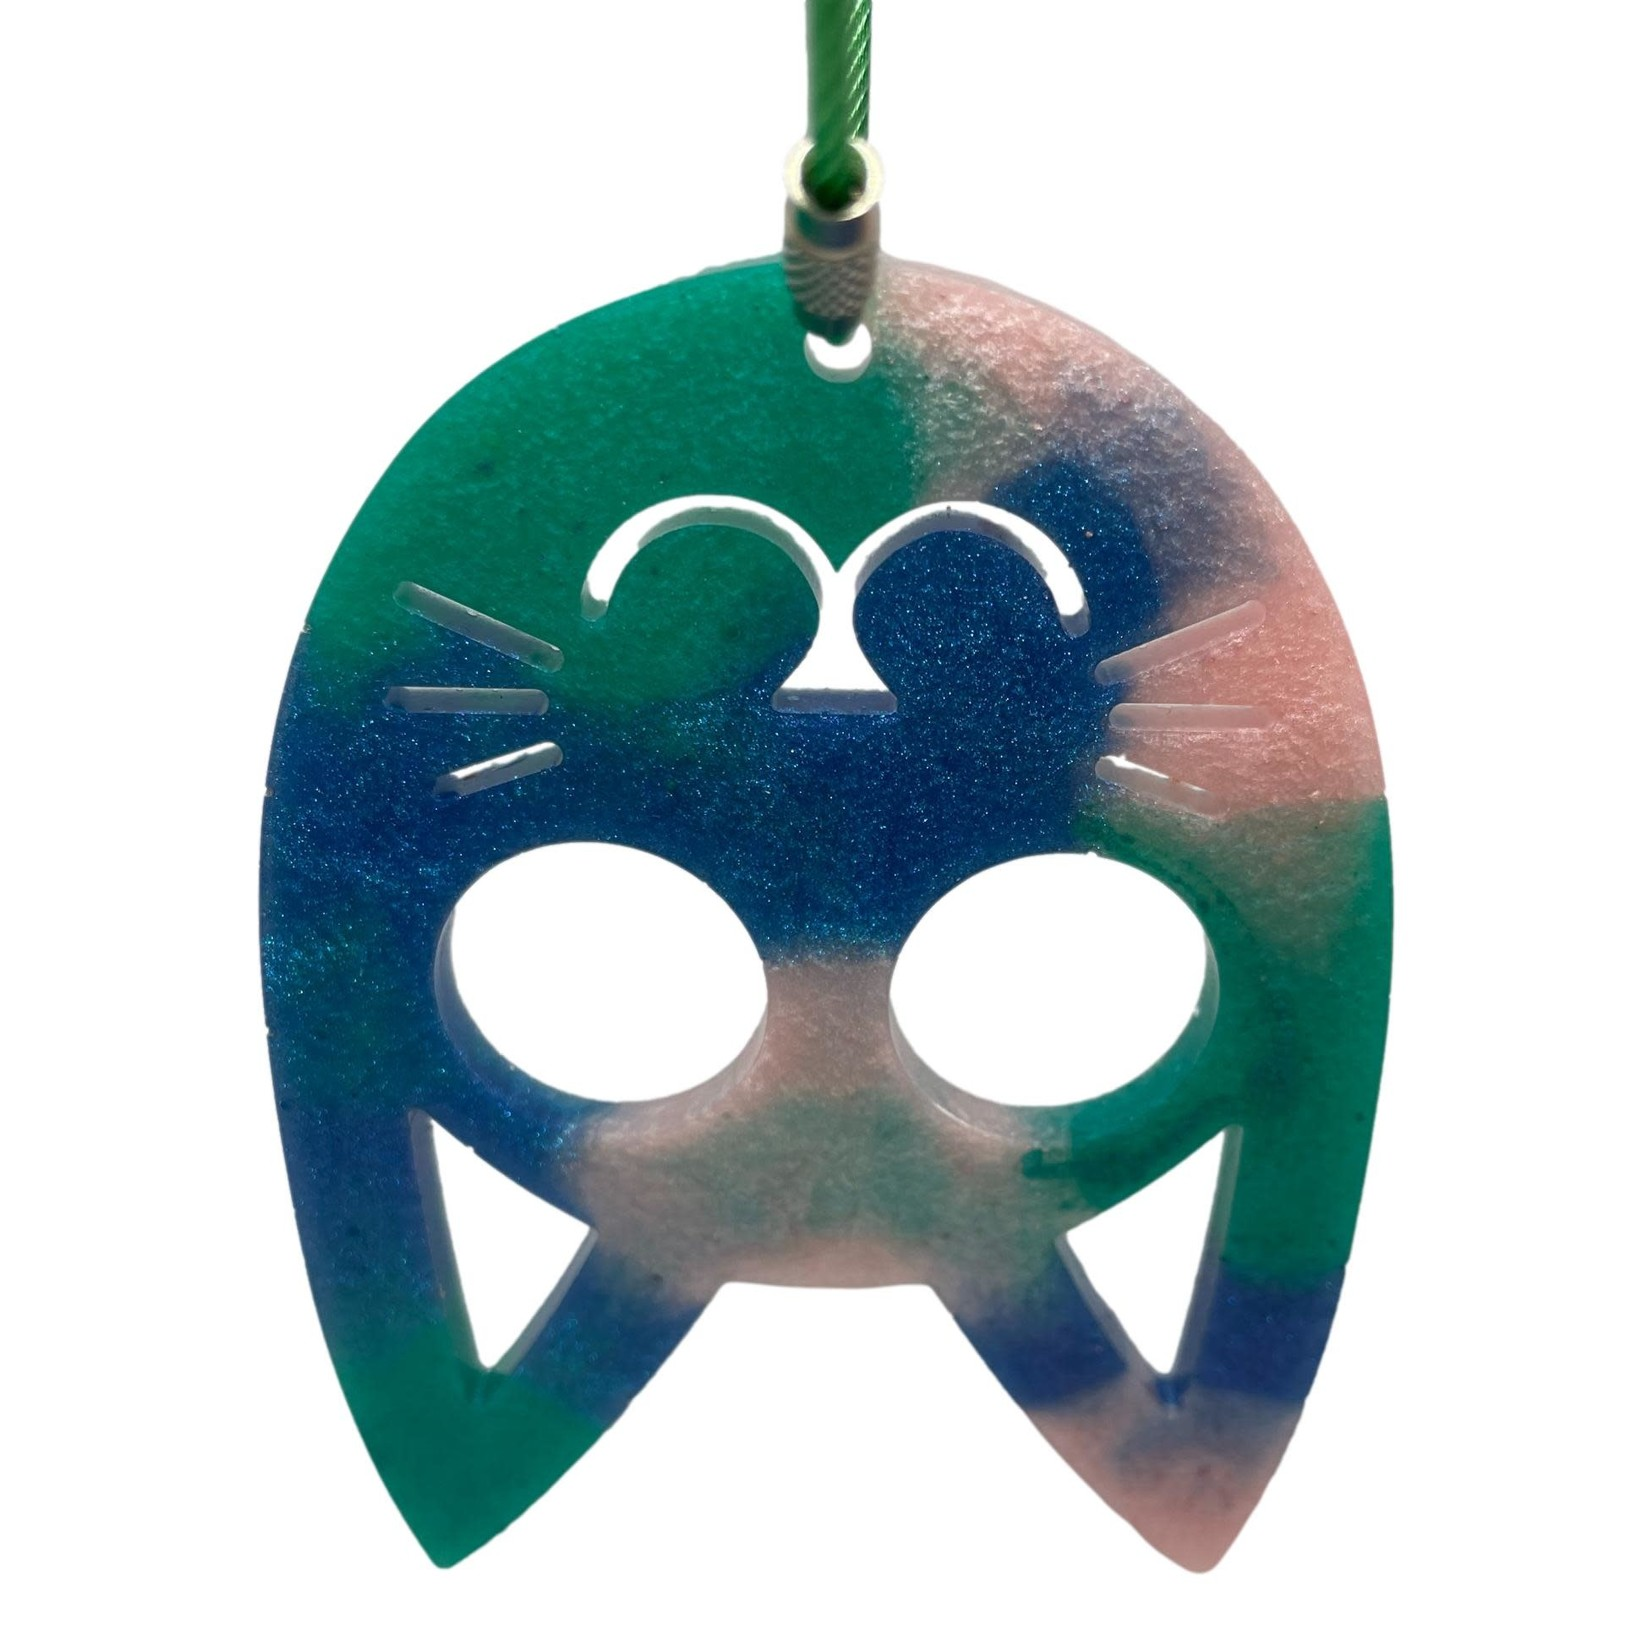 East Coast Sirens Blue, Green & Pink Pointy Cat Key Chain